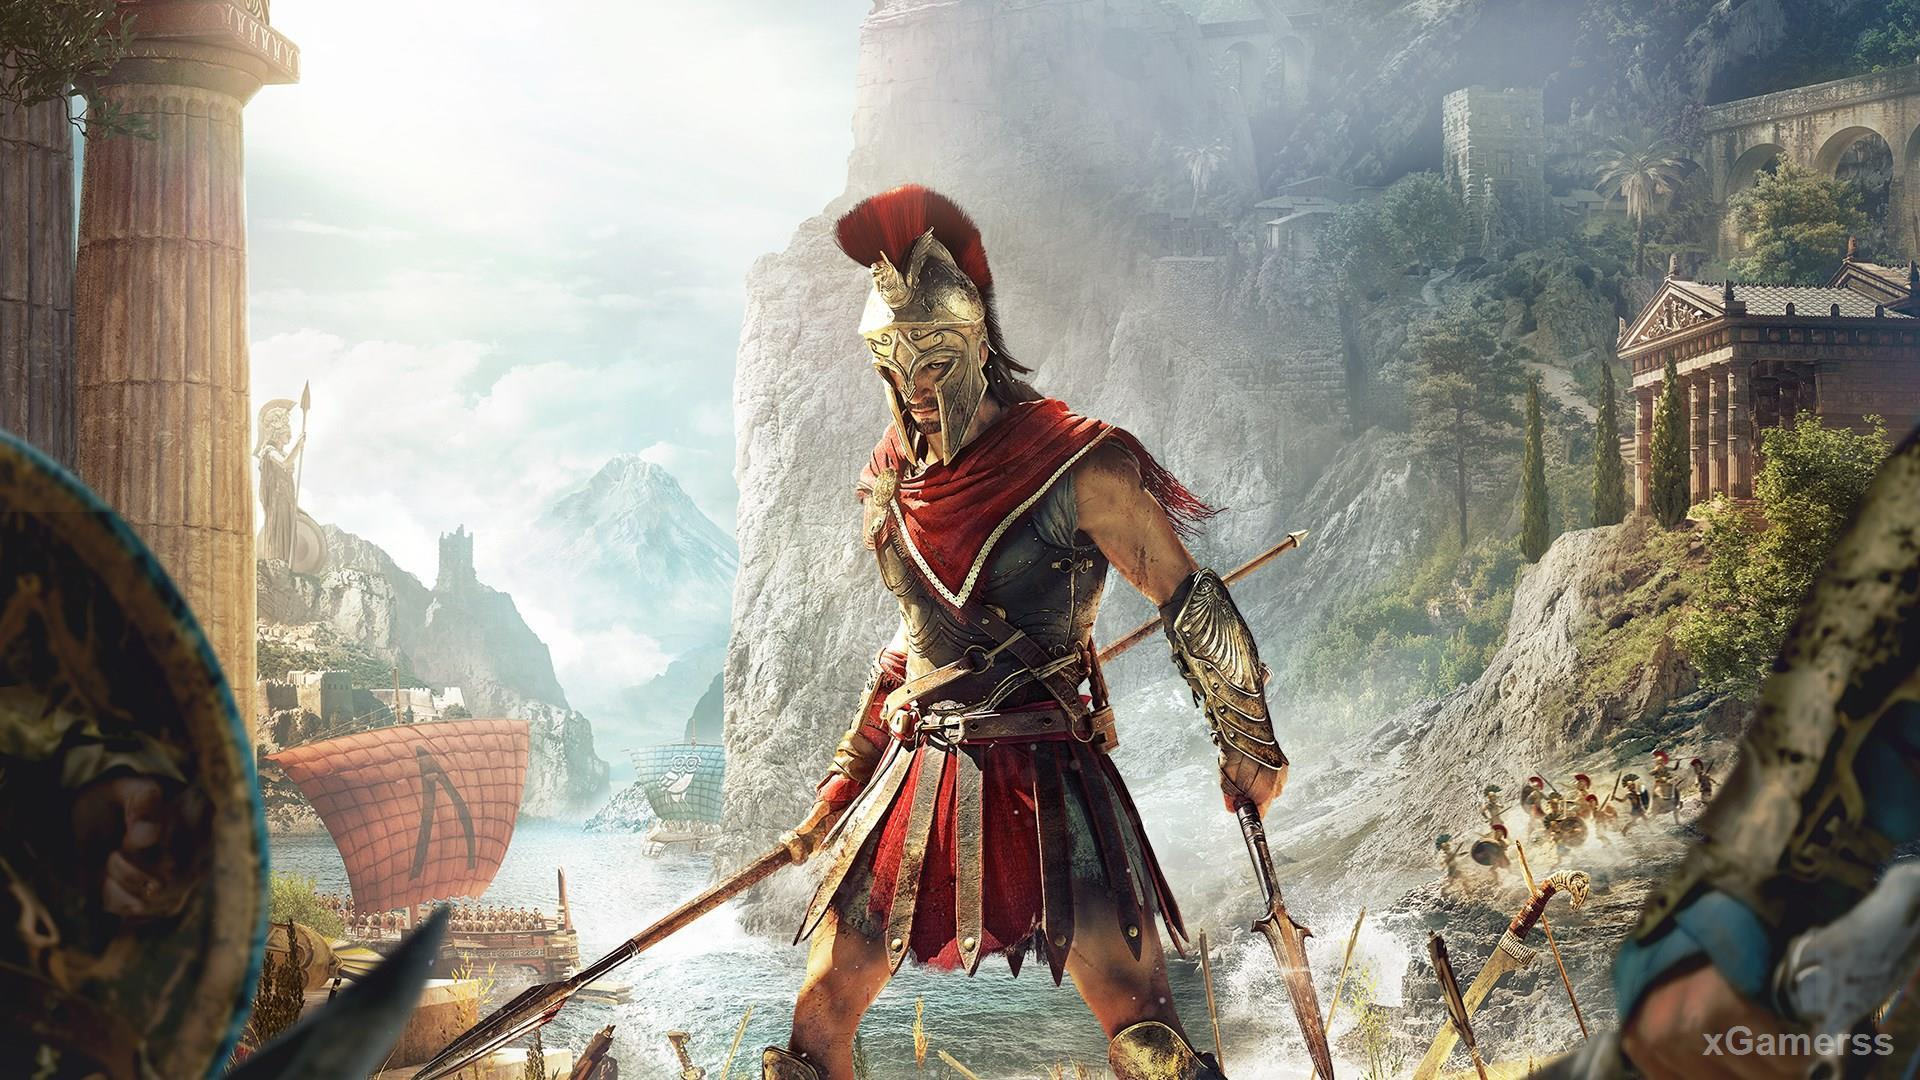 ASSASSIN S CREED ODYSSEY - Write your own epic odyssey and become a legendary Spartan hero